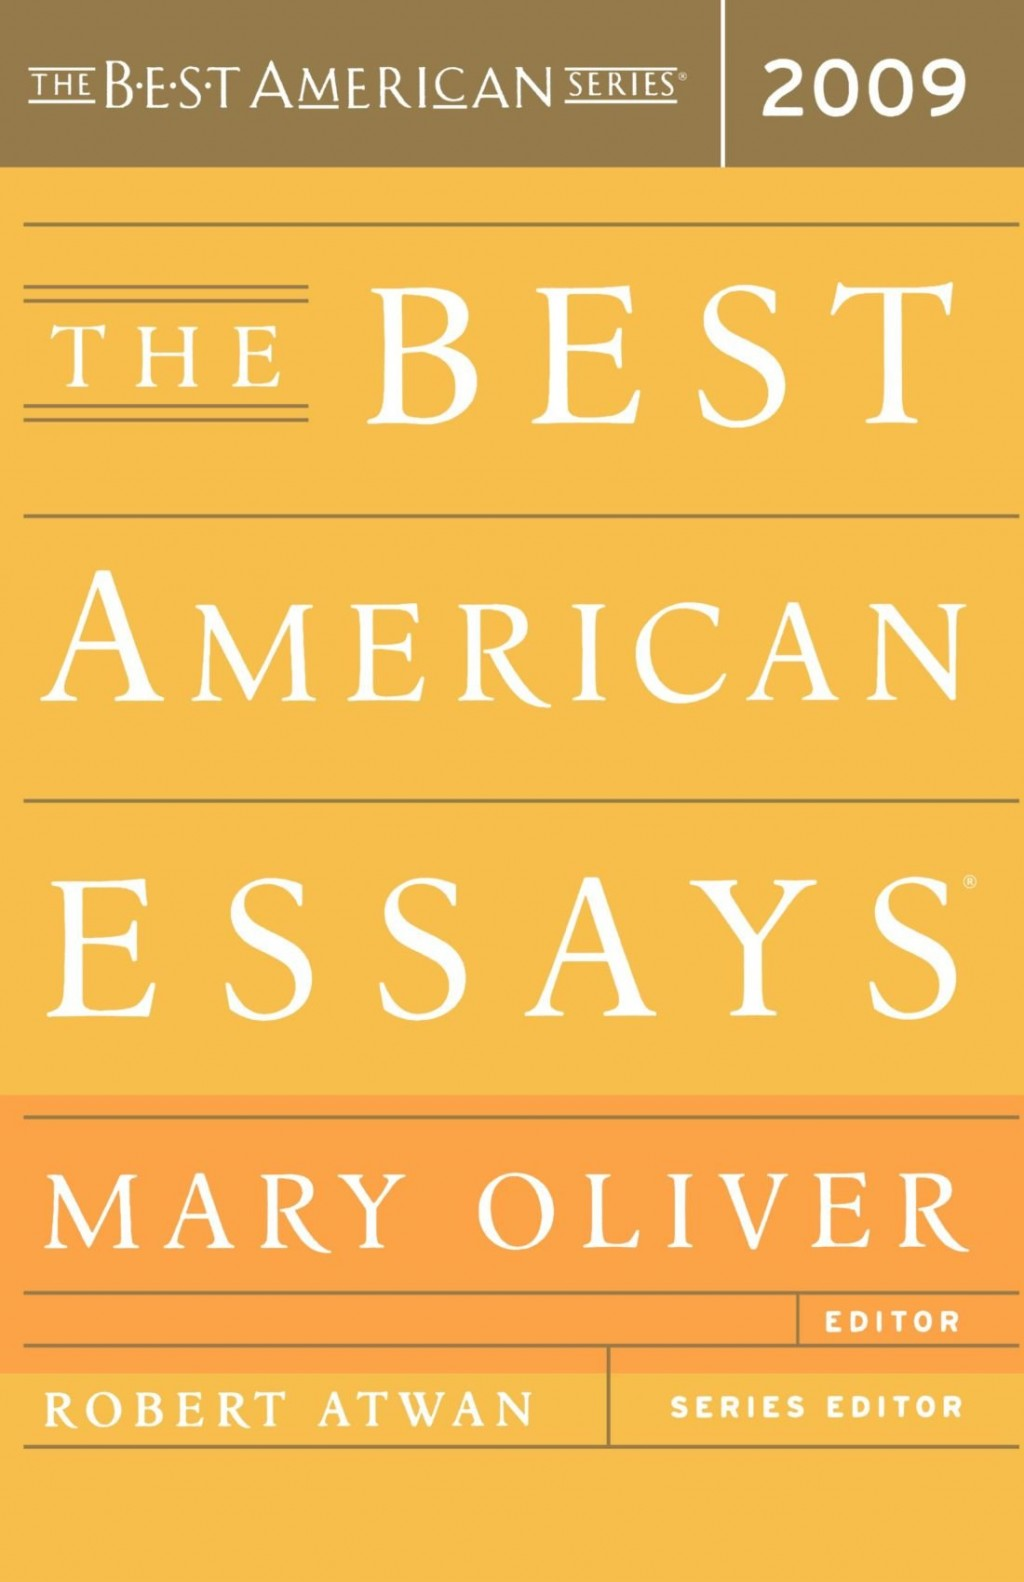 009 617qb5slhfl Essay Example Best American Striking Essays 2017 Pdf Submissions 2019 Of The Century Table Contents Large